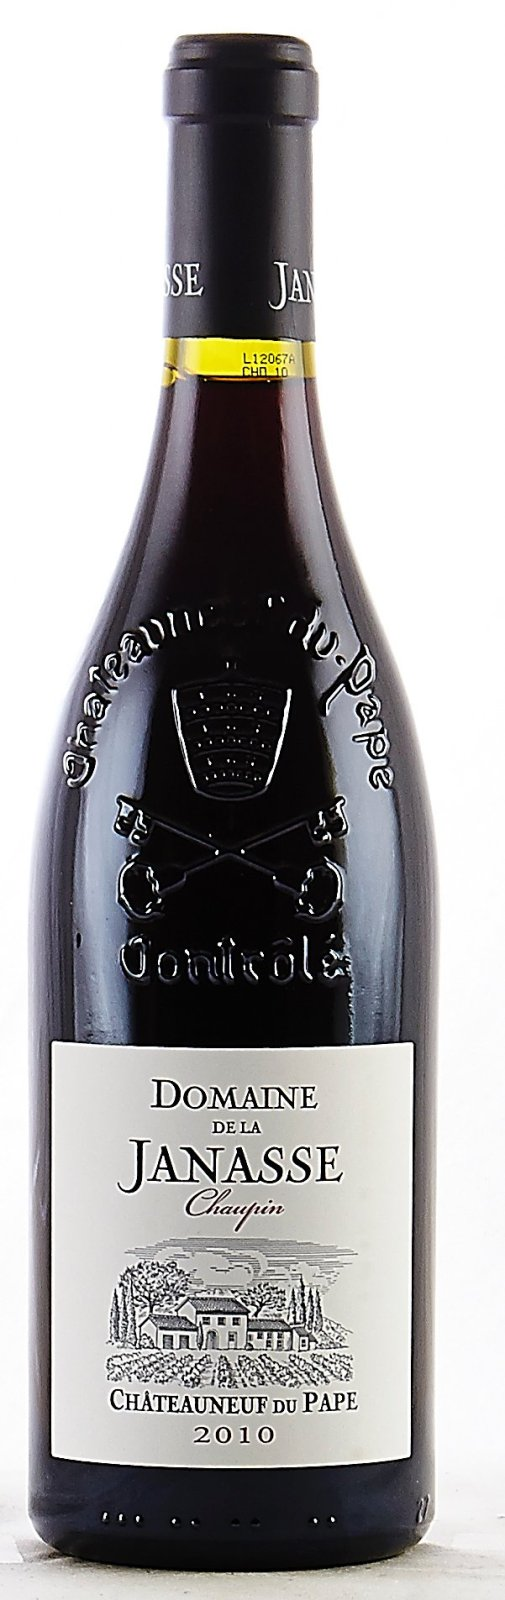 Domaine de la Janasse Chateauneuf du Pape Cuvee Chaupin 2011,  (WA95) from The BPW - Merchants of rare and fine wines.